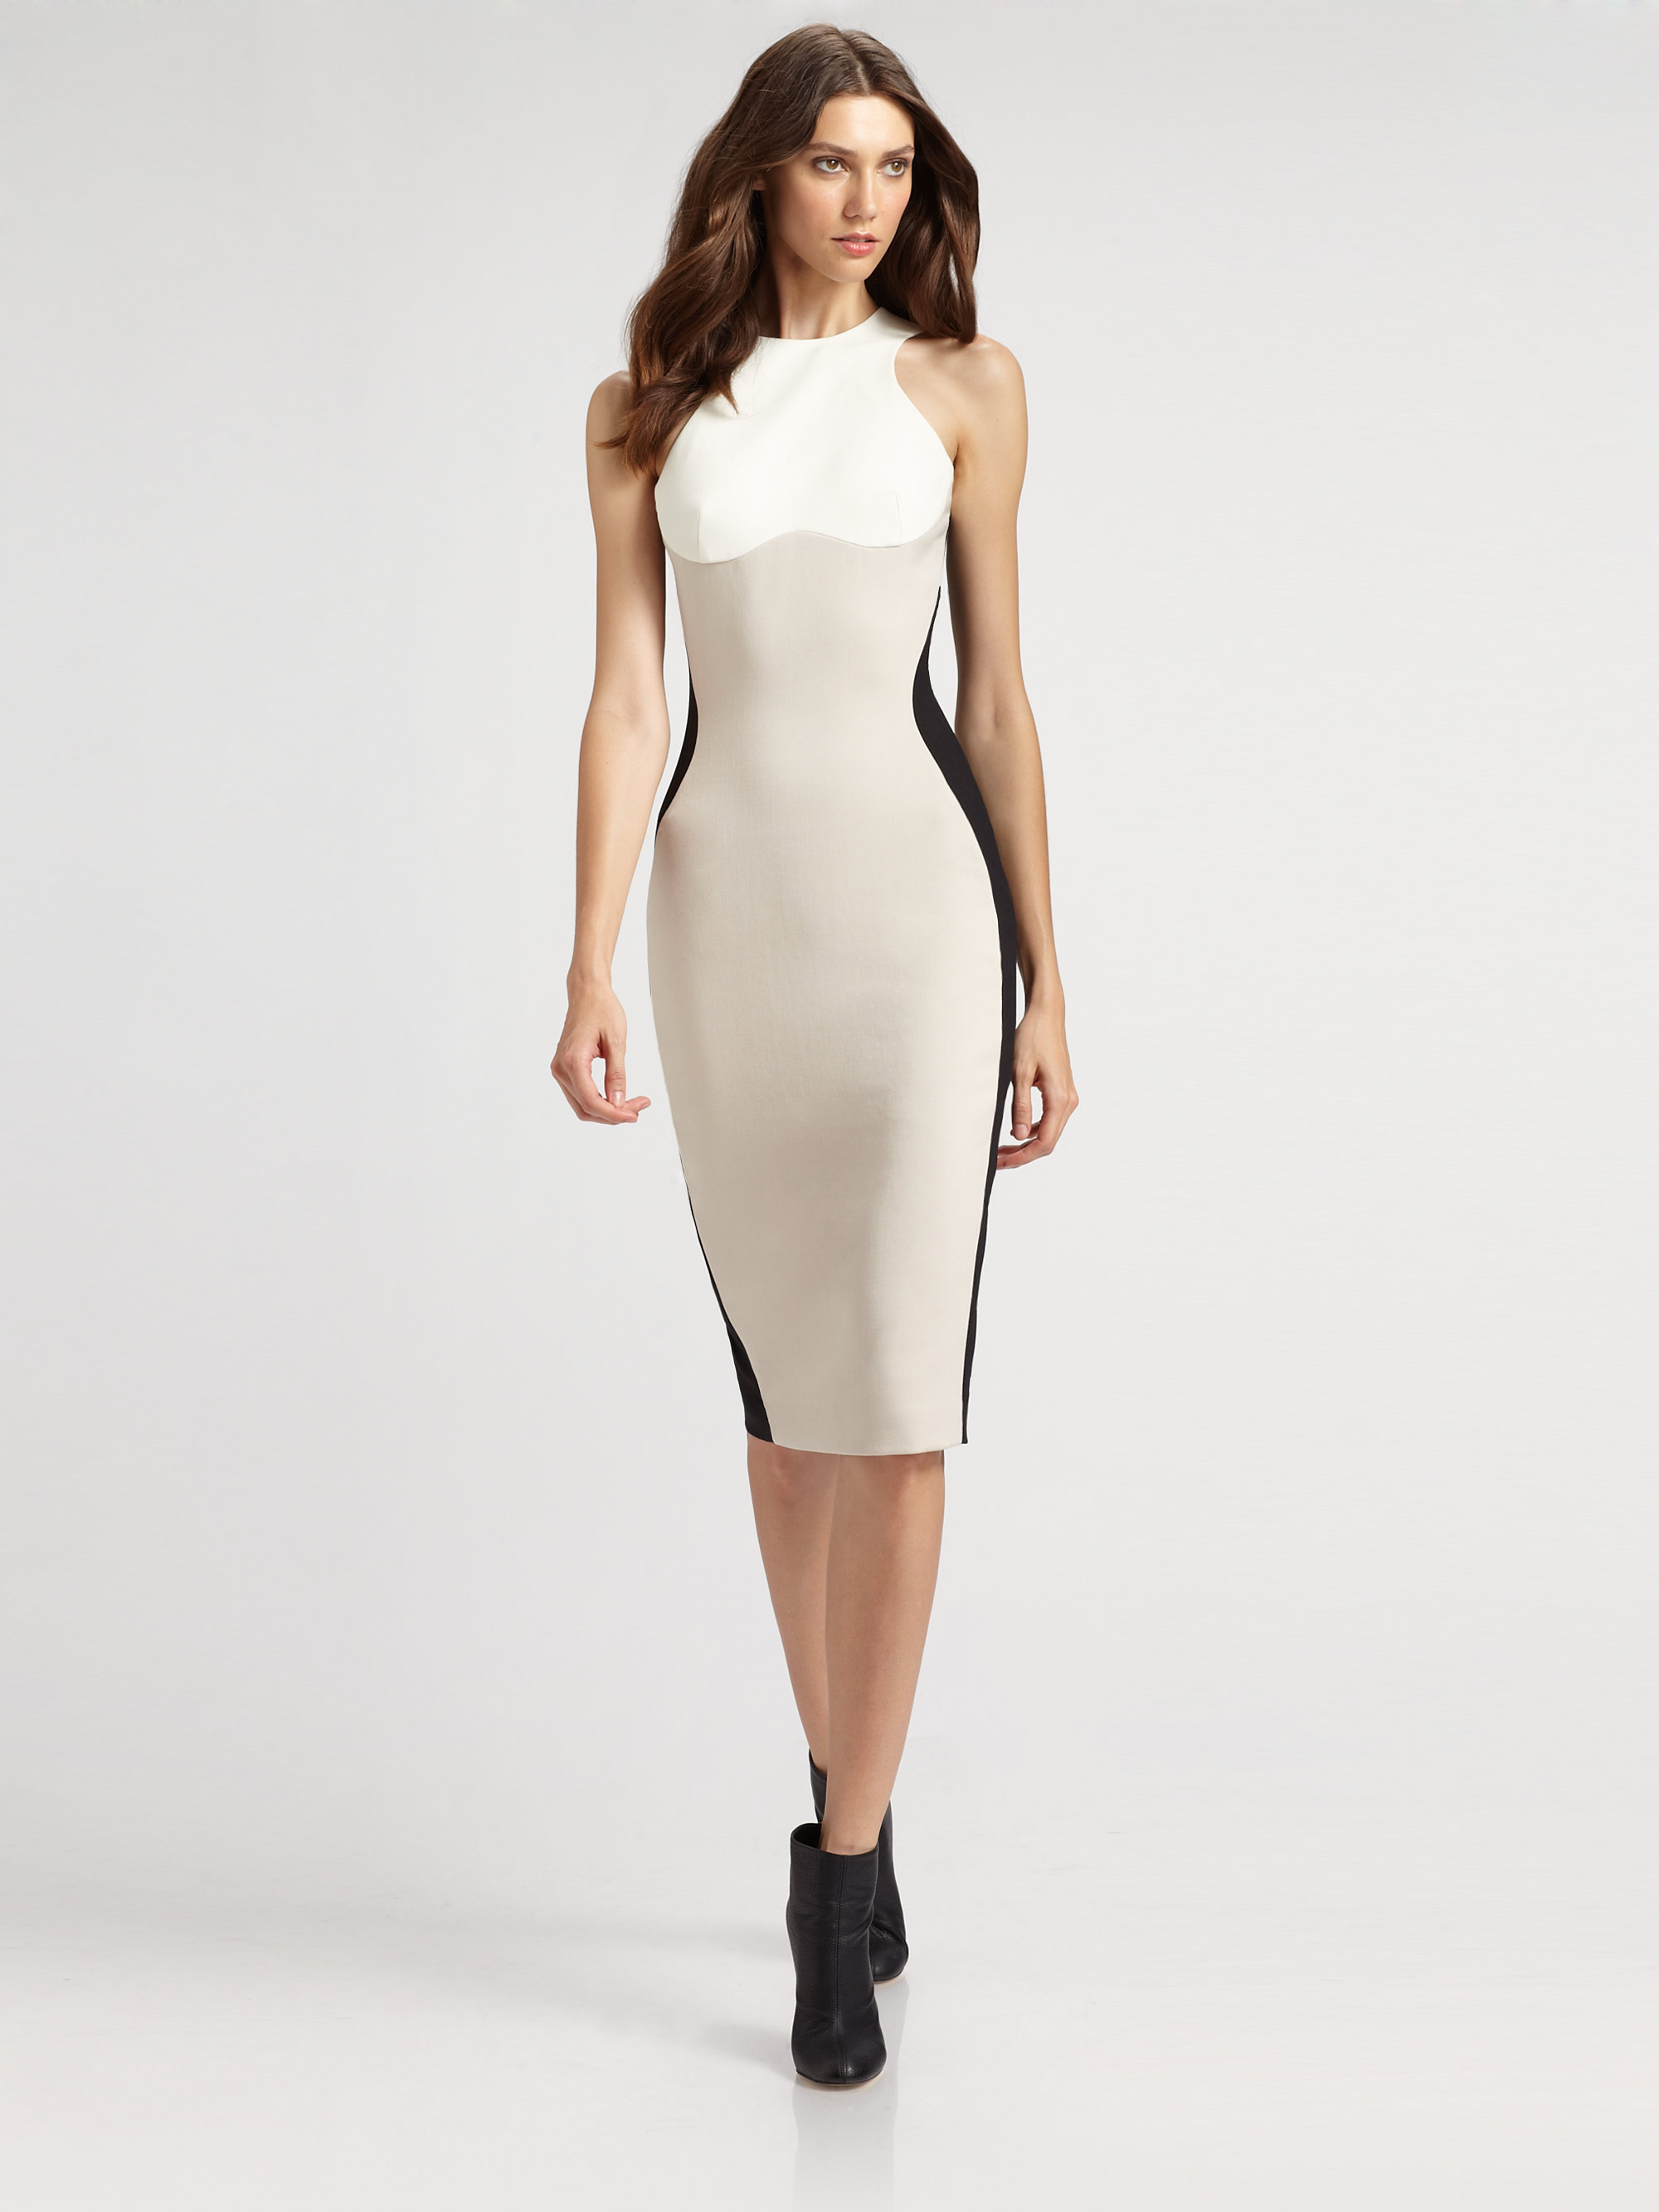 Stella McCartney Colorblock Dress